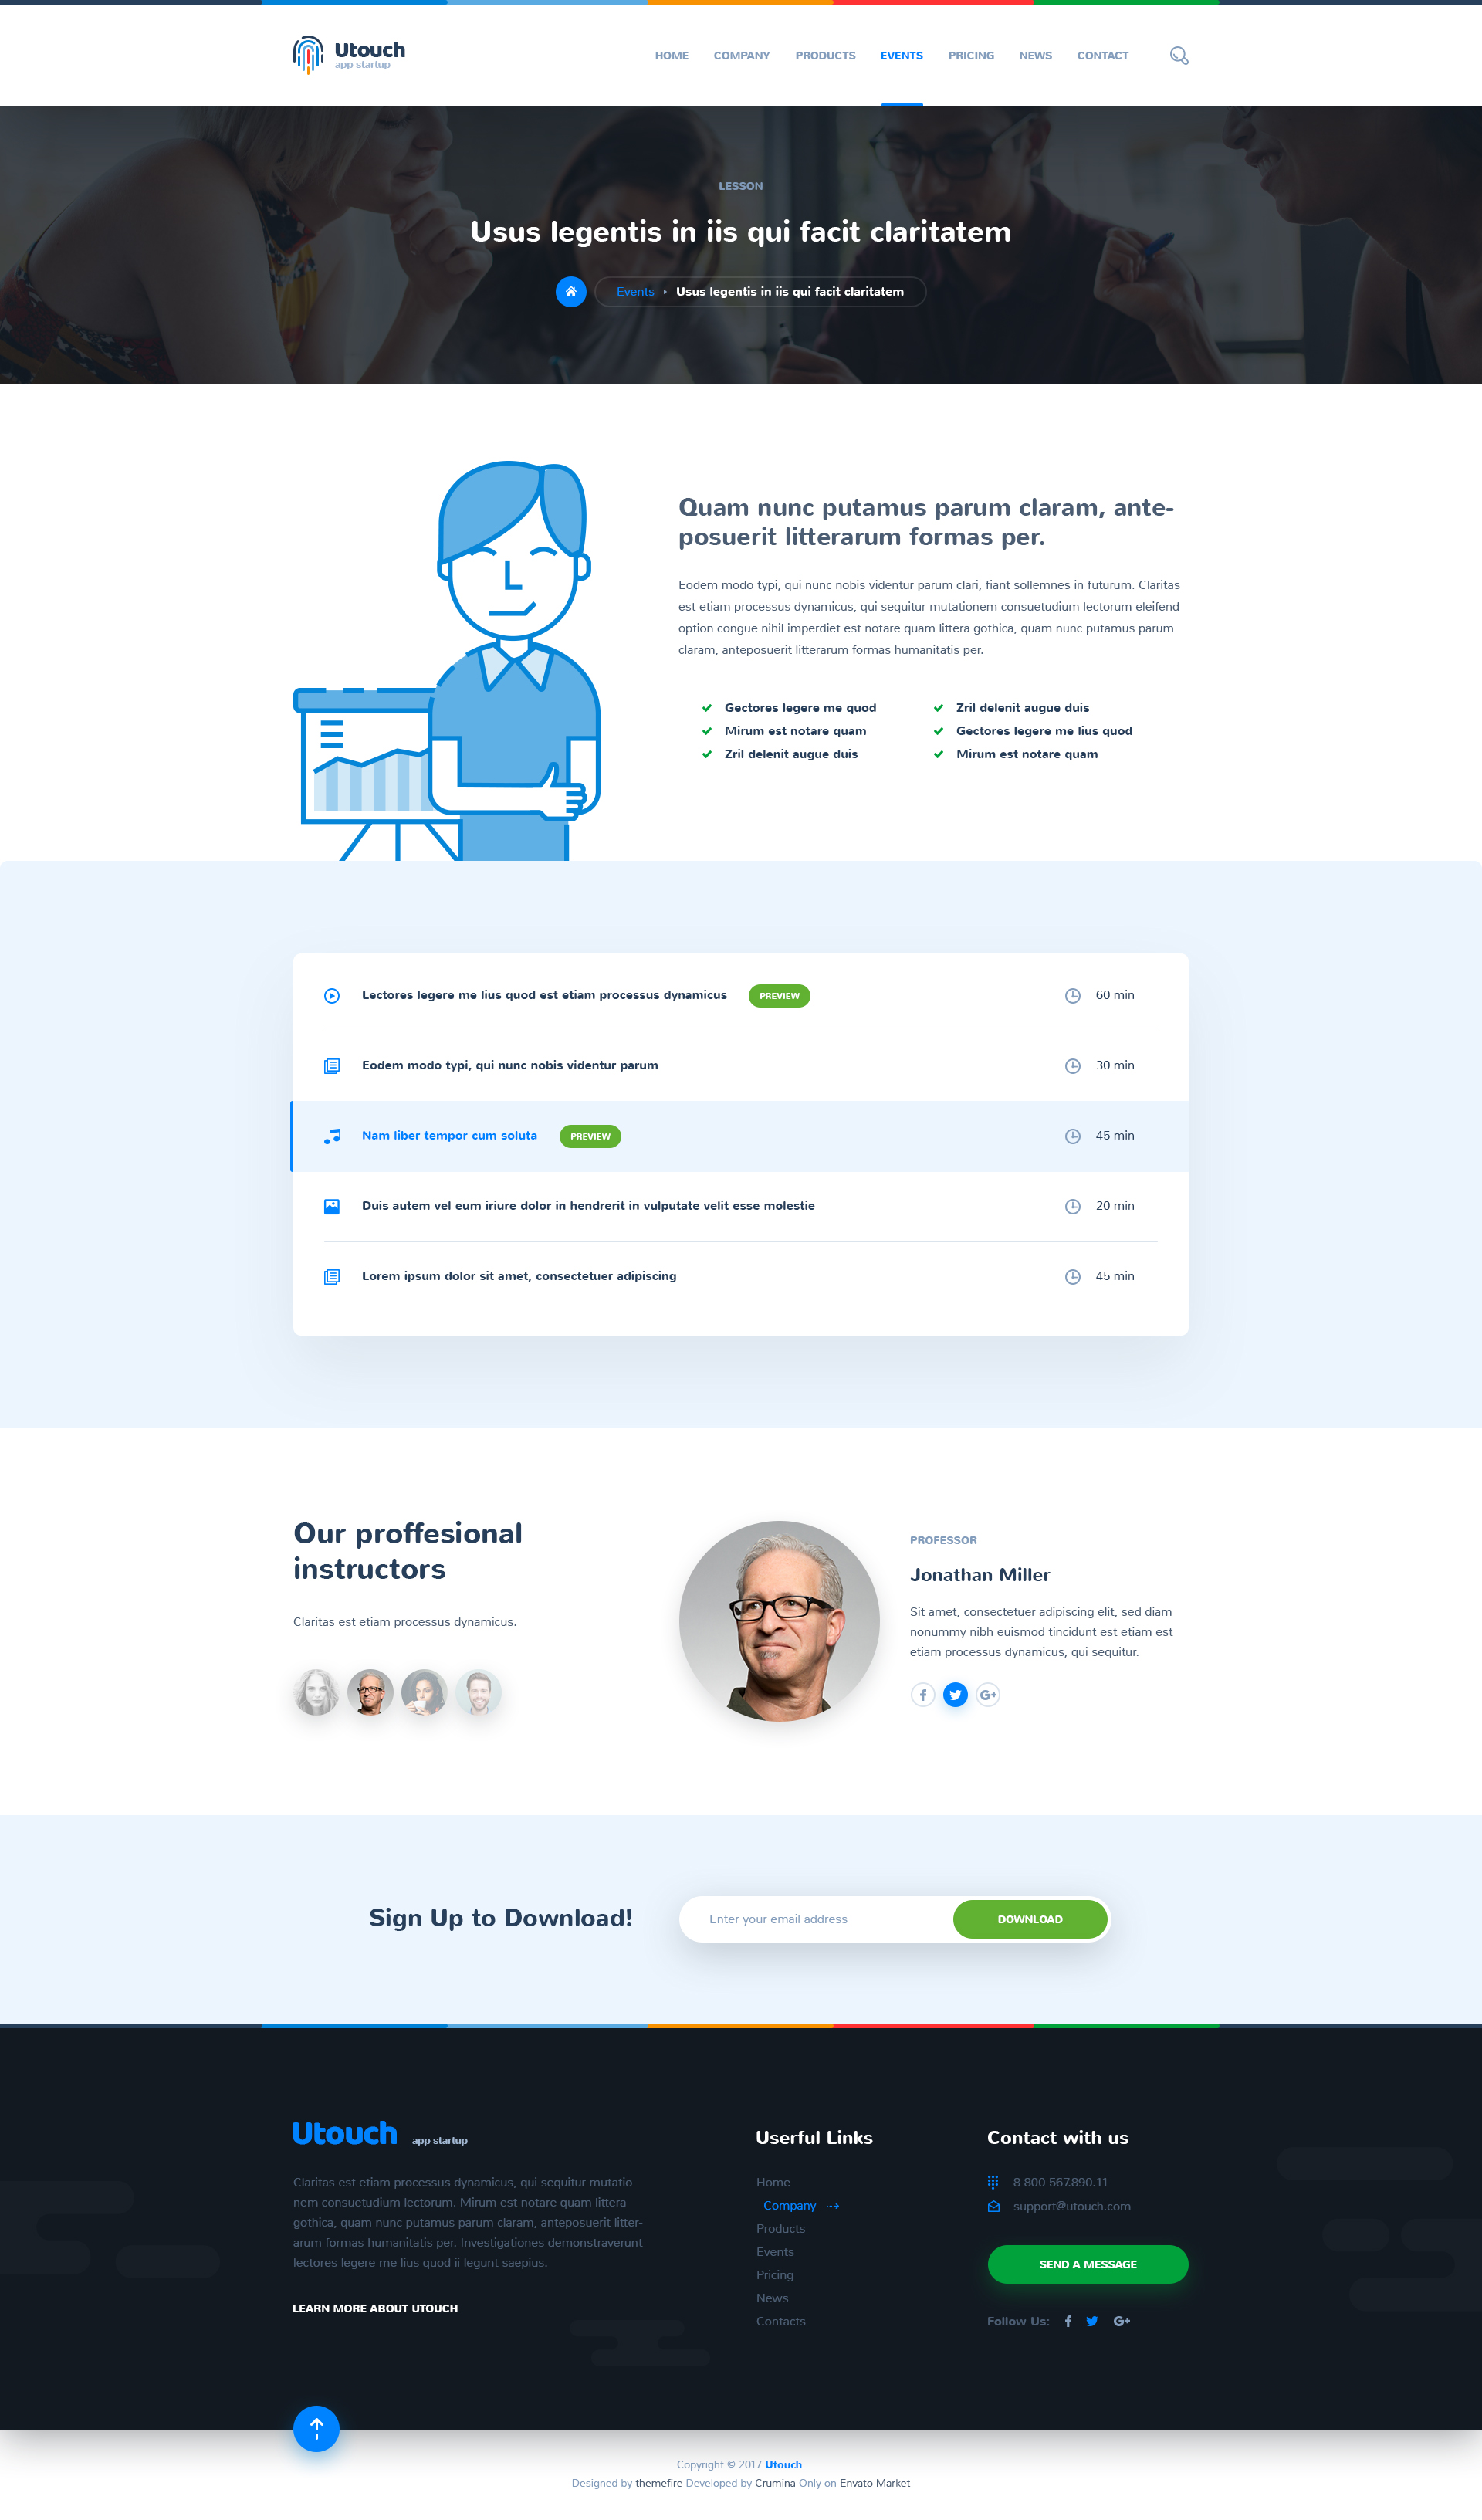 Utouch - App Startup Website PSD Template by themefire